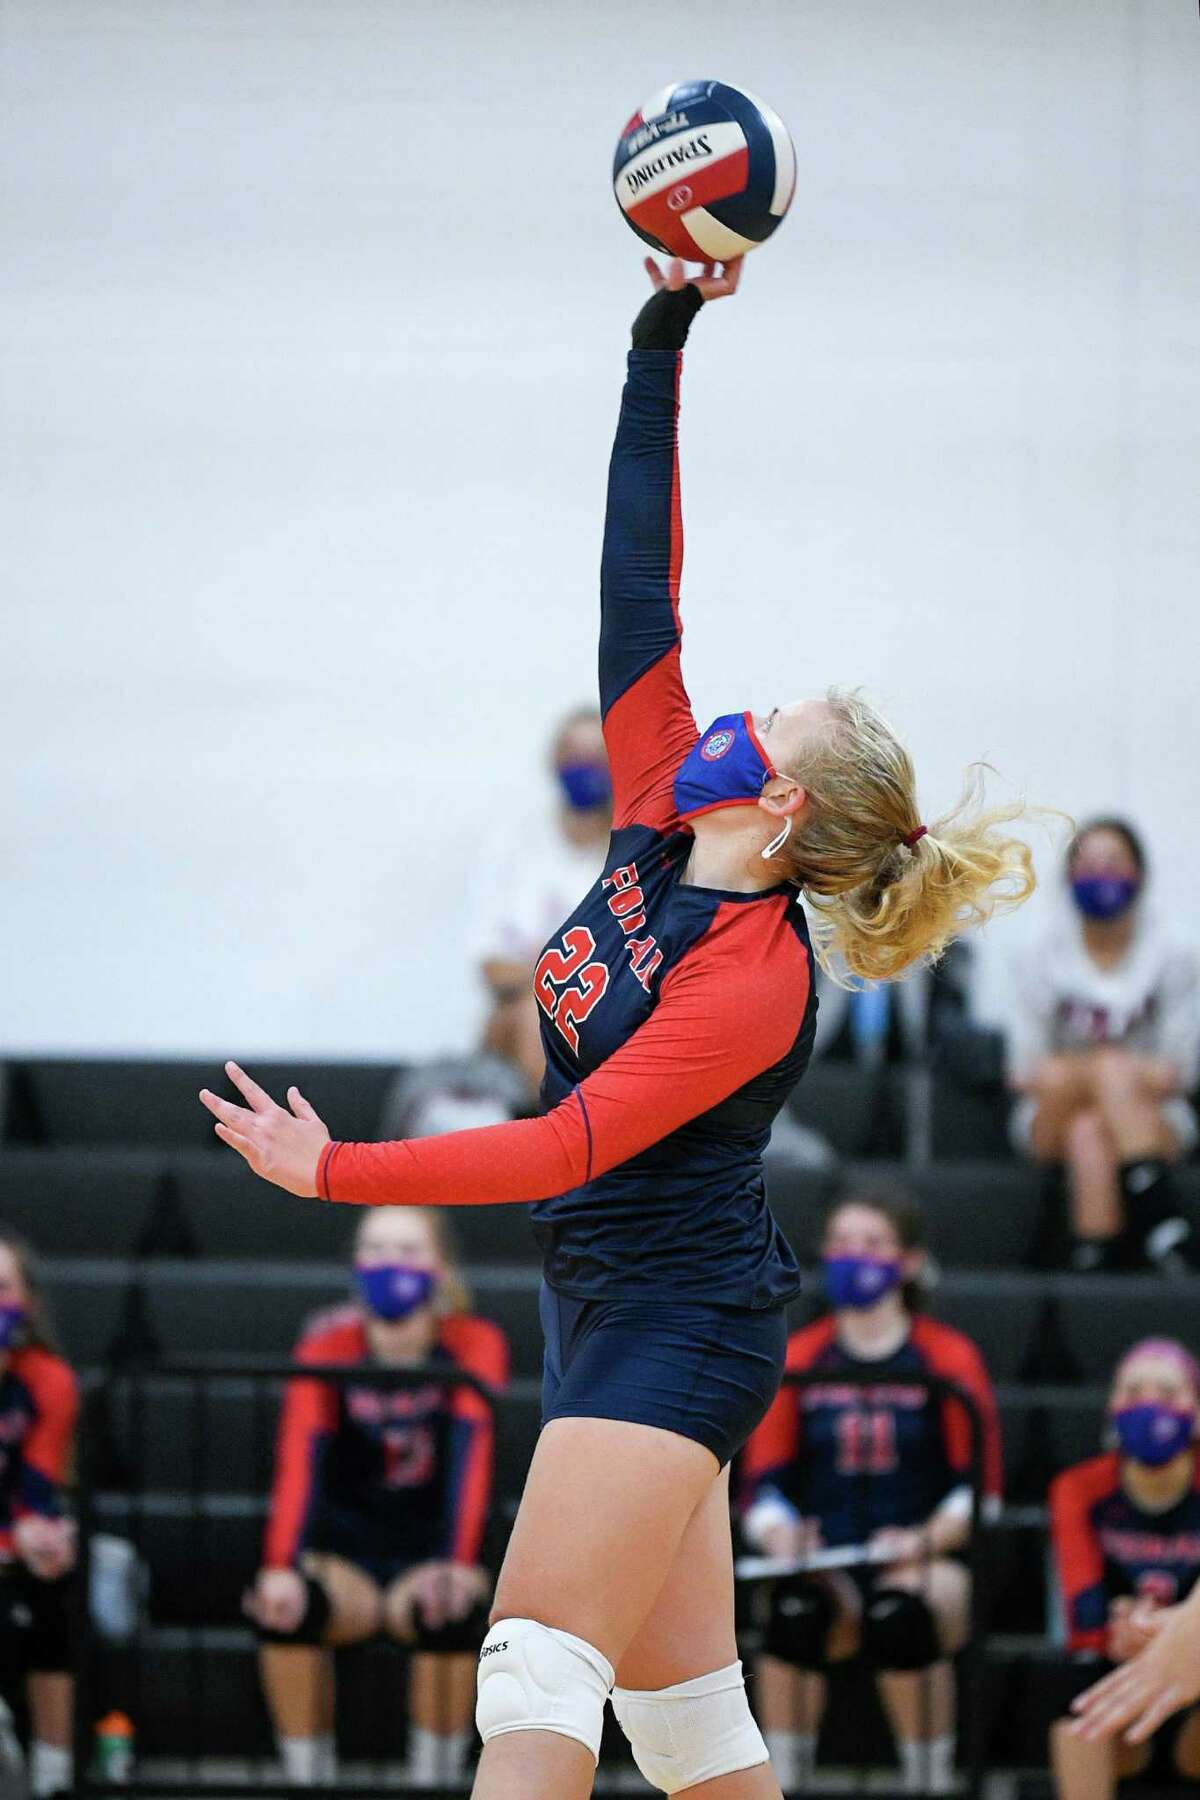 Tori Lanese had 15 kills to help Foran defeat Lauralton Hall in the SCC playoffs.